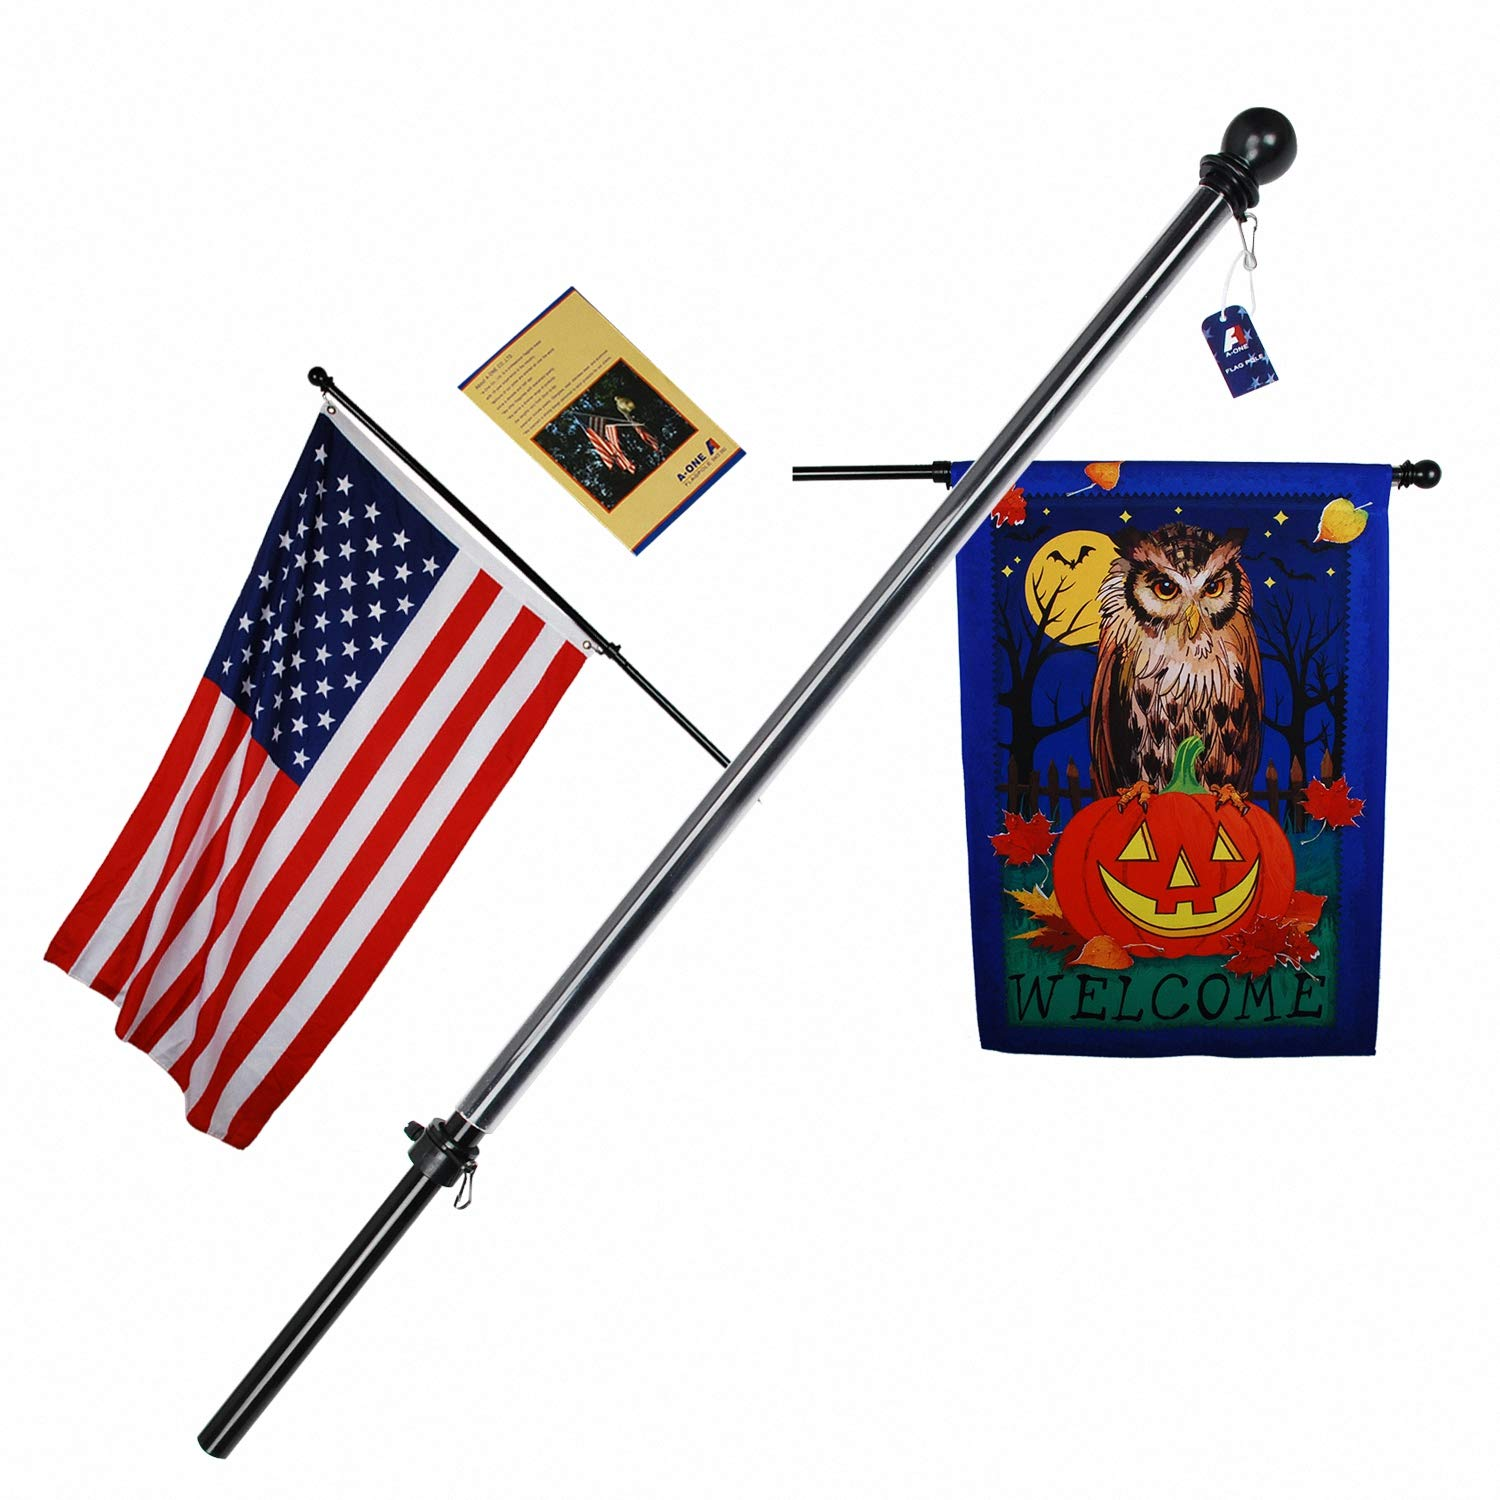 A-ONE 56'' Tangle Free Aluminum Flagpole for Grommet or House - American US Flag Pole Kit with Anti-wrap Sleeve, Stainless Steel Rust Prevention Clip & Decorative Ball, Black